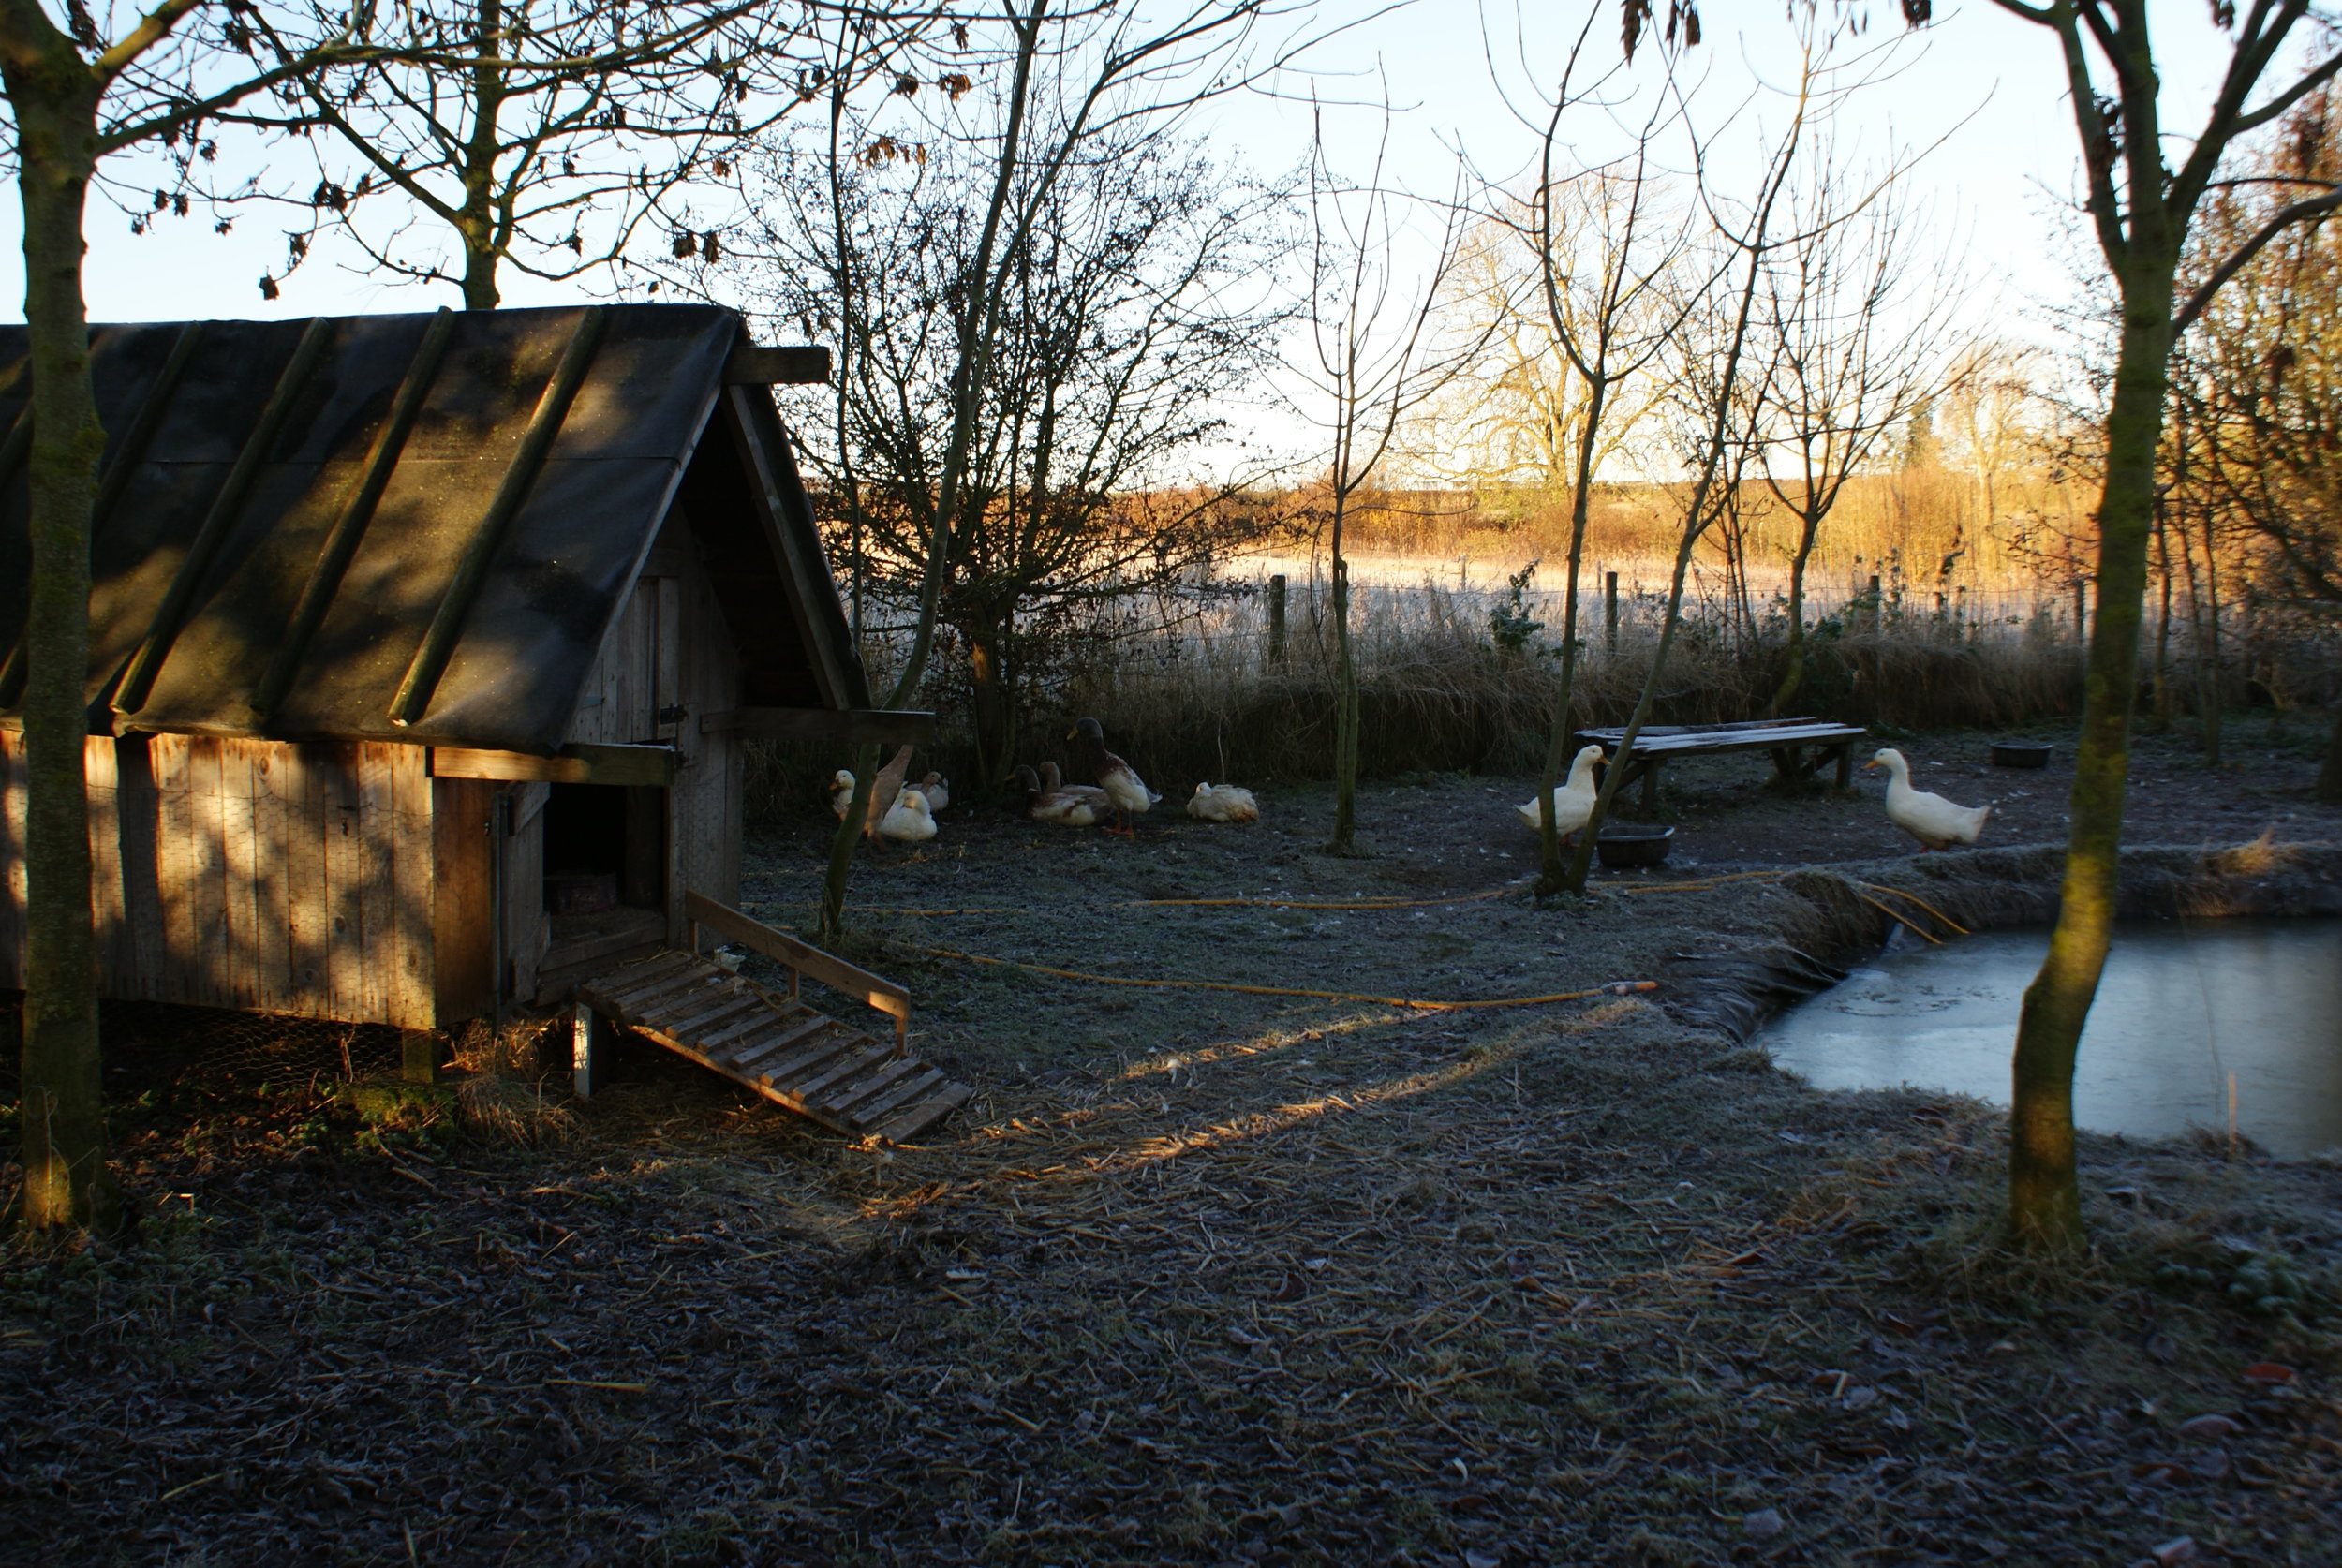 The main duck house and pond first thing in the morning.